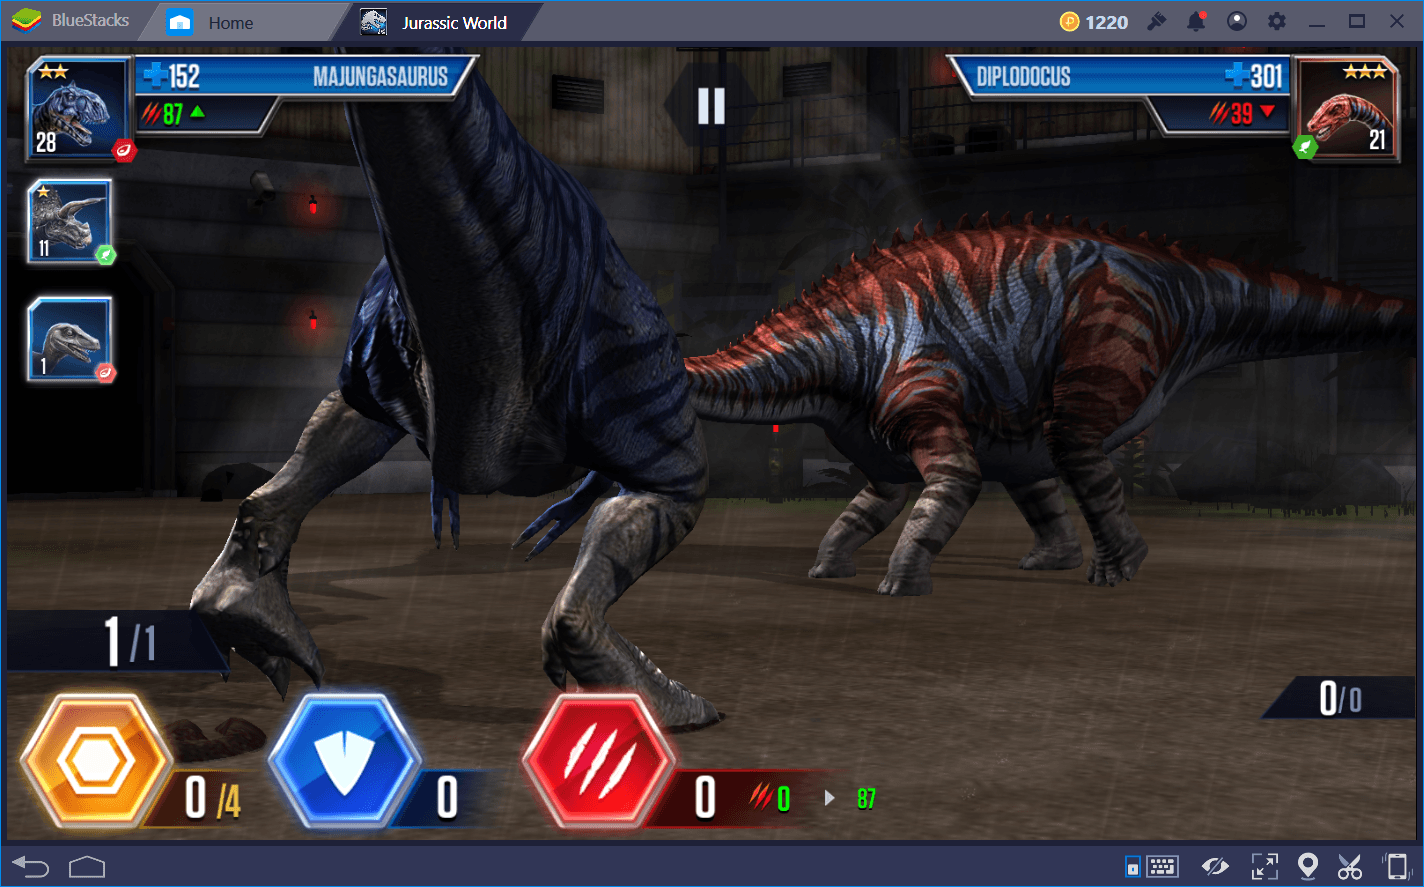 Tips and Tricks for Jurassic World: The Game